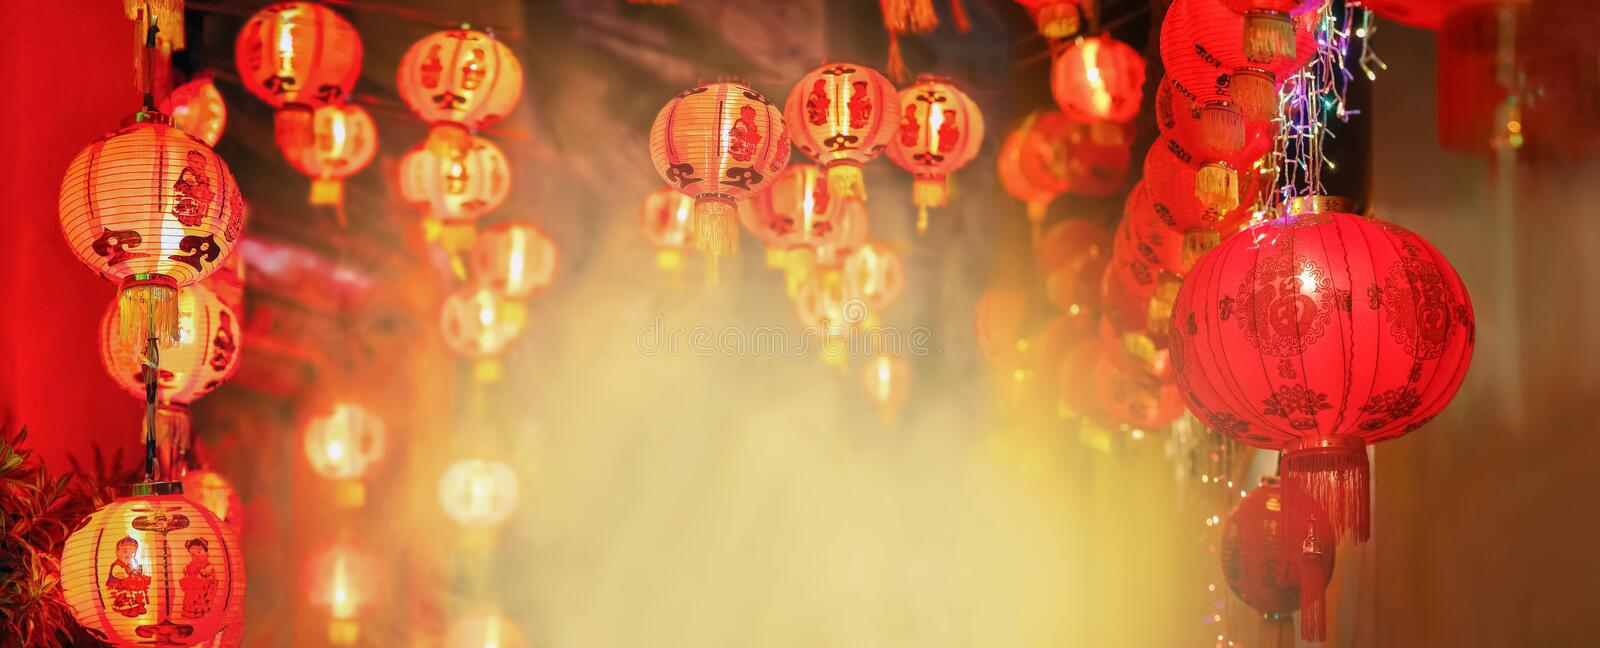 Chinese new year lanterns in chinatown.Text mean happiness. And good health royalty free stock images